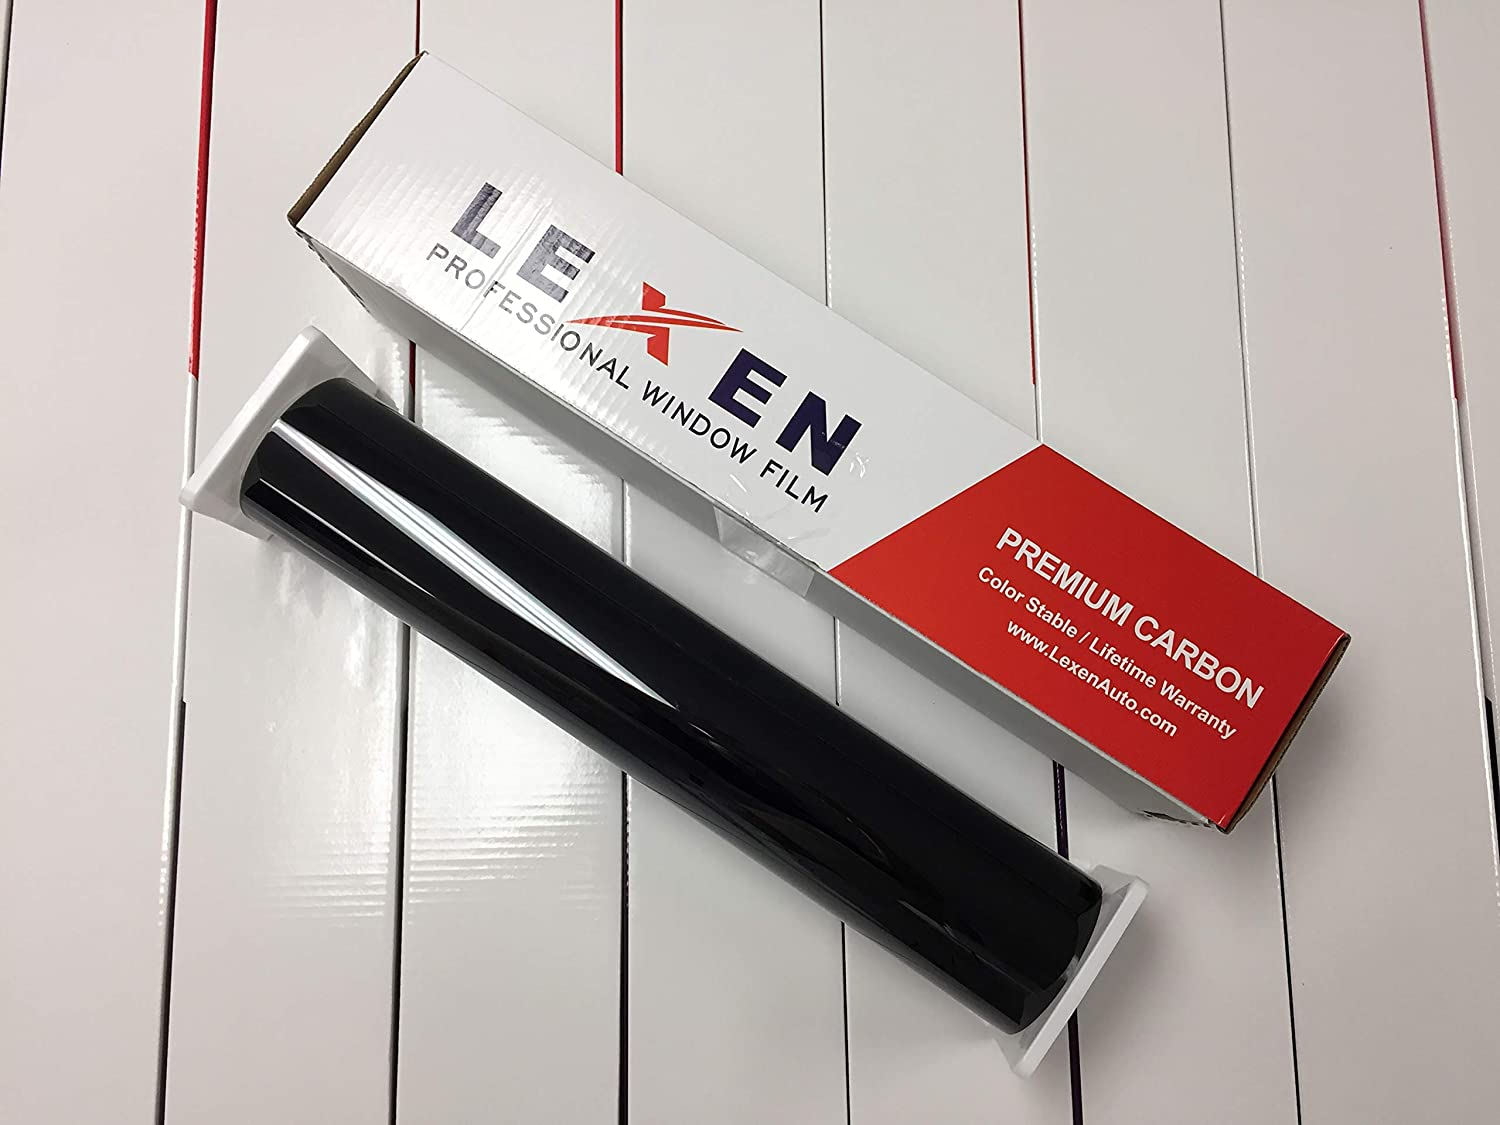 LEXEN 2 Ply Premium Carbon 20 Inches by 100 Feet Roll Window Tint Film}